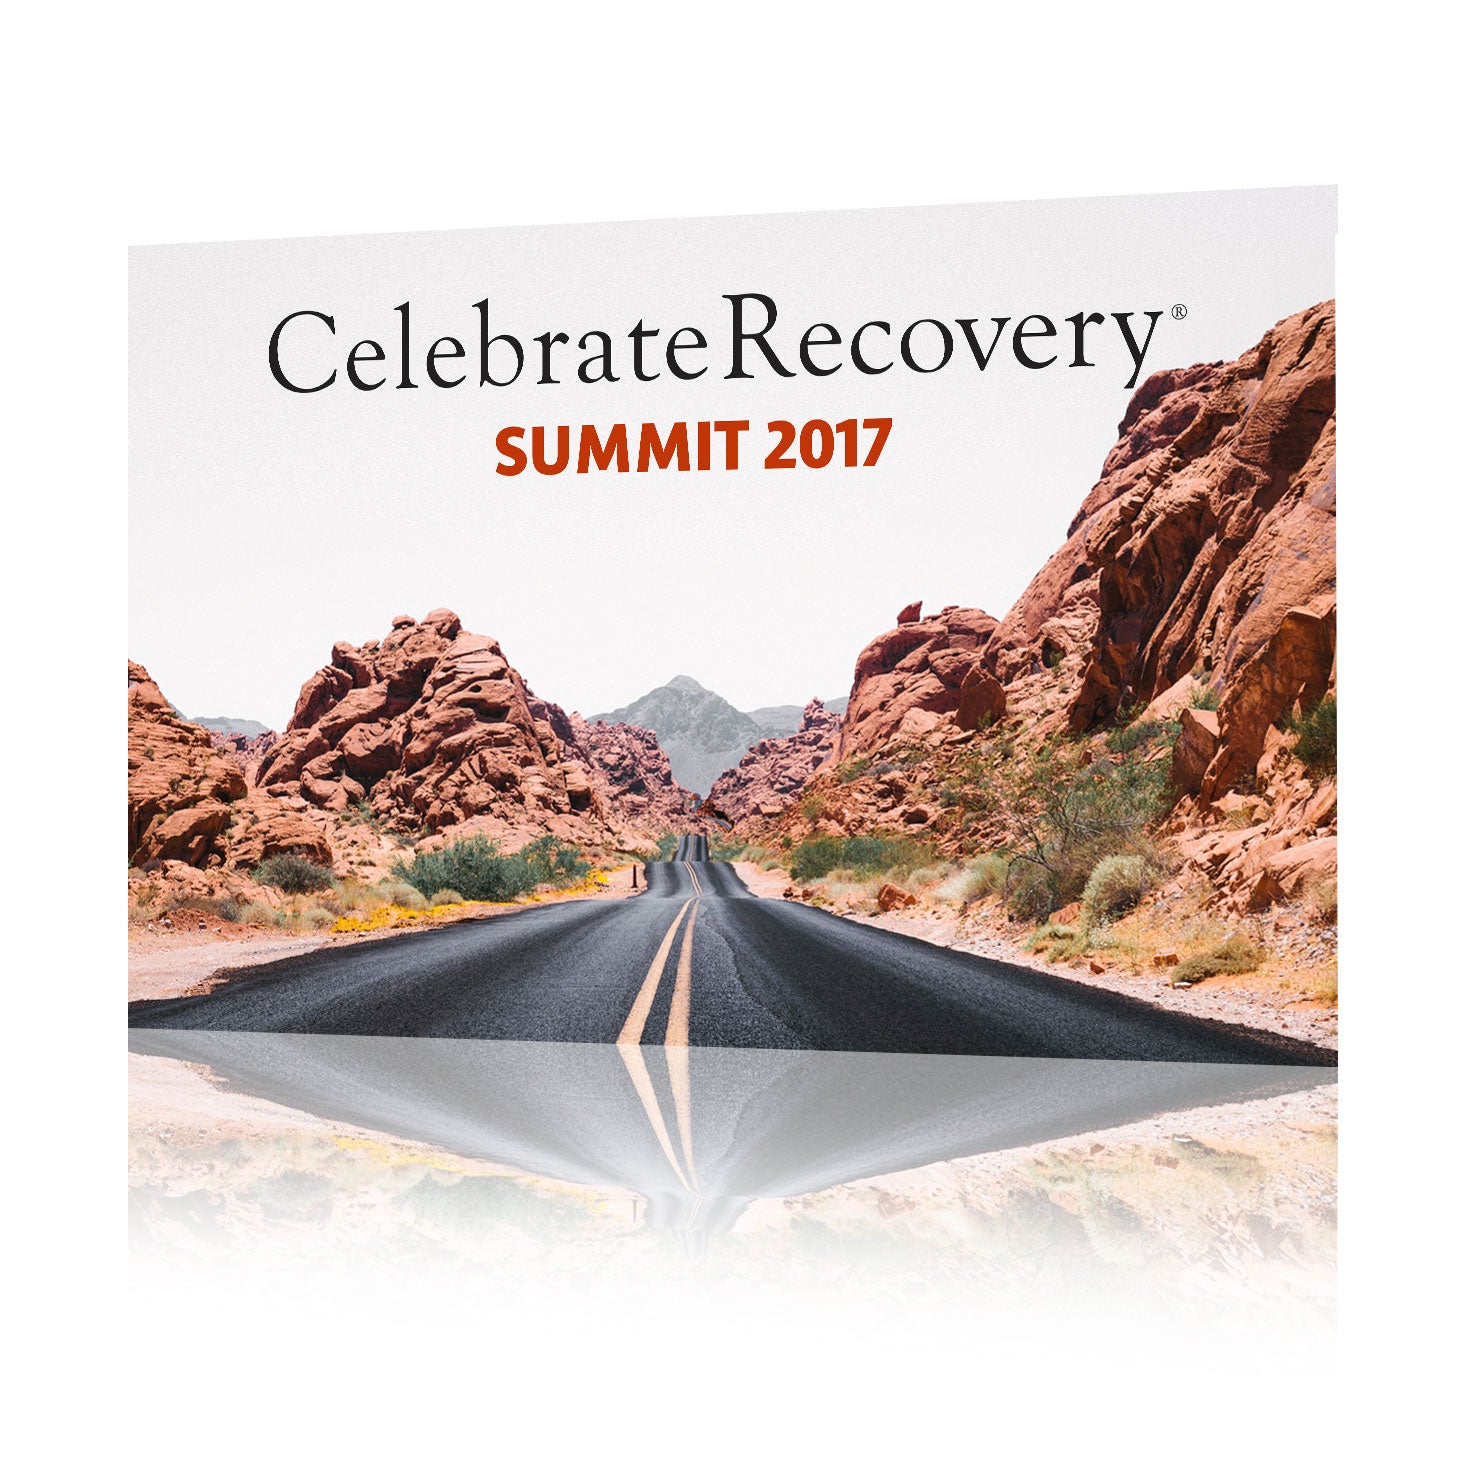 2017 Celebrate Recovery Summit: Testimony - Lily and Violet